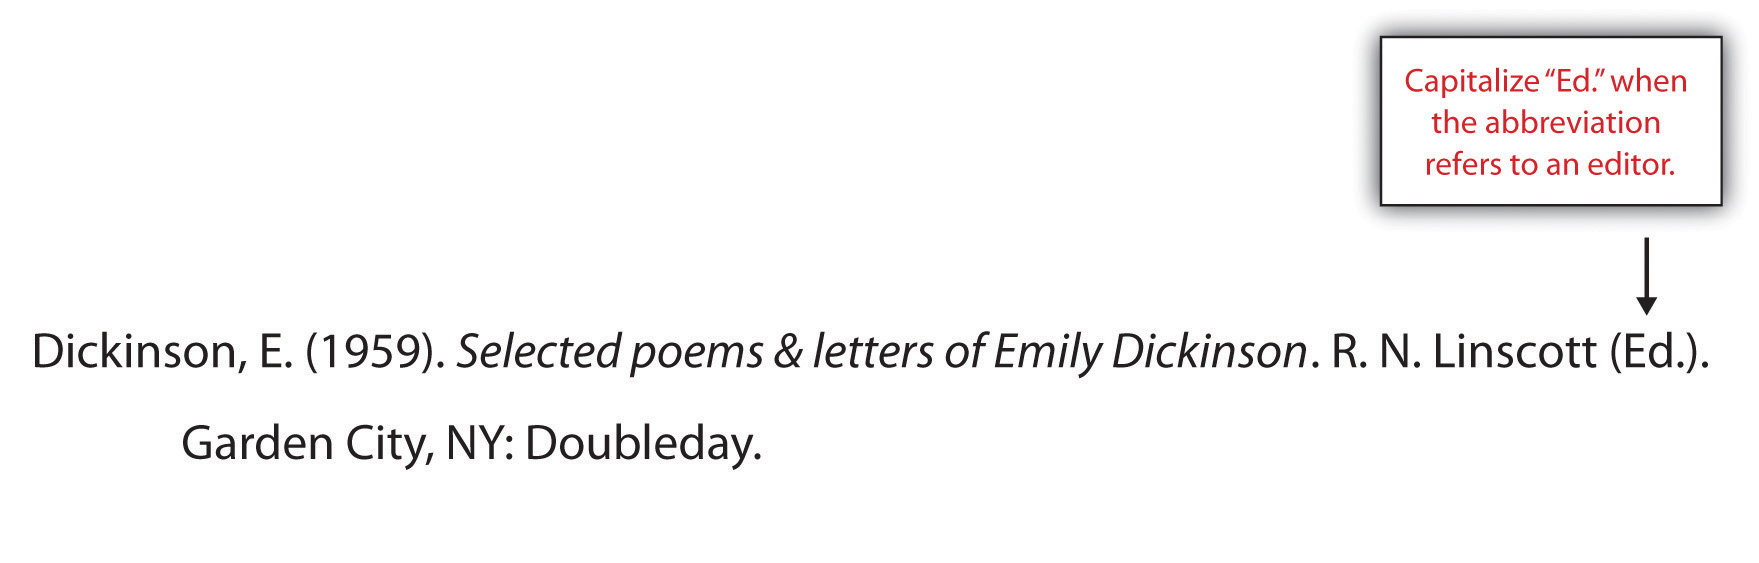 Dickinson, E. (1959). Selected poems & letters of Emily Dickinson. R. N. Linscott (Ed.). Garden City, NY: Doubleday.